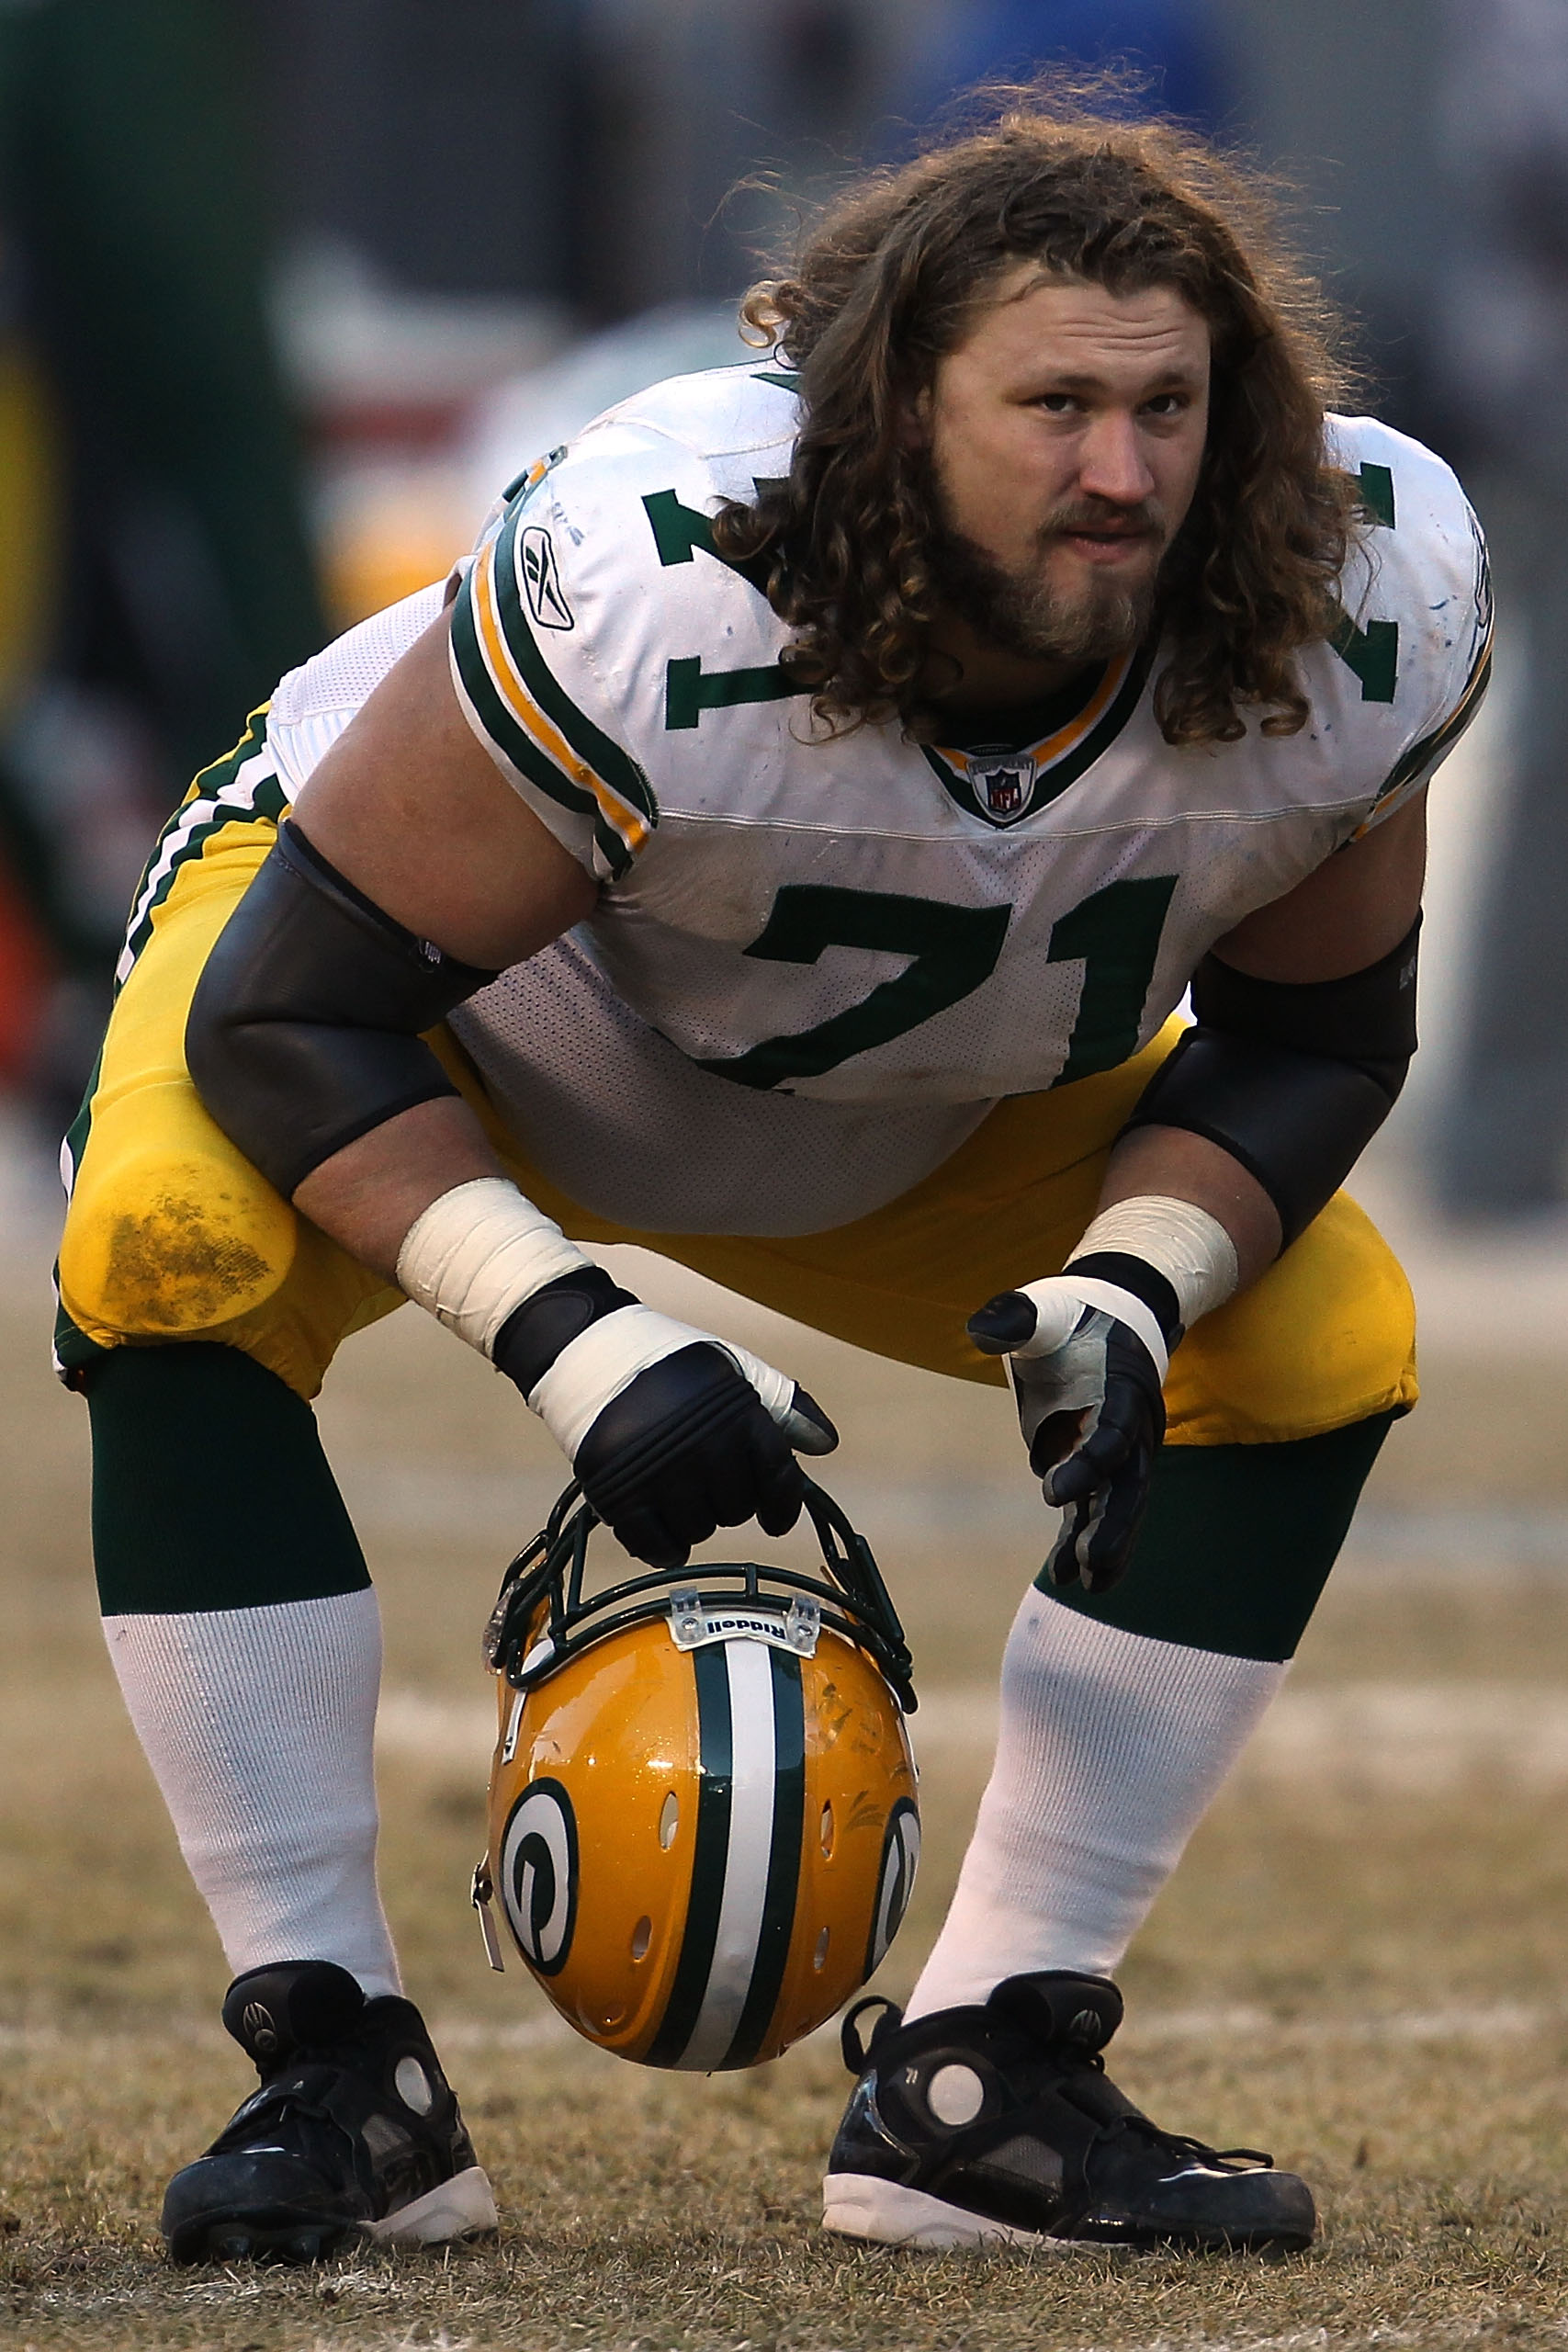 CHICAGO, IL - JANUARY 23:  Josh Sitton #71 of the Green Bay Packers looks on from the field while taking on the Chicago Bears in the NFC Championship Game at Soldier Field on January 23, 2011 in Chicago, Illinois.  (Photo by Jonathan Daniel/Getty Images)